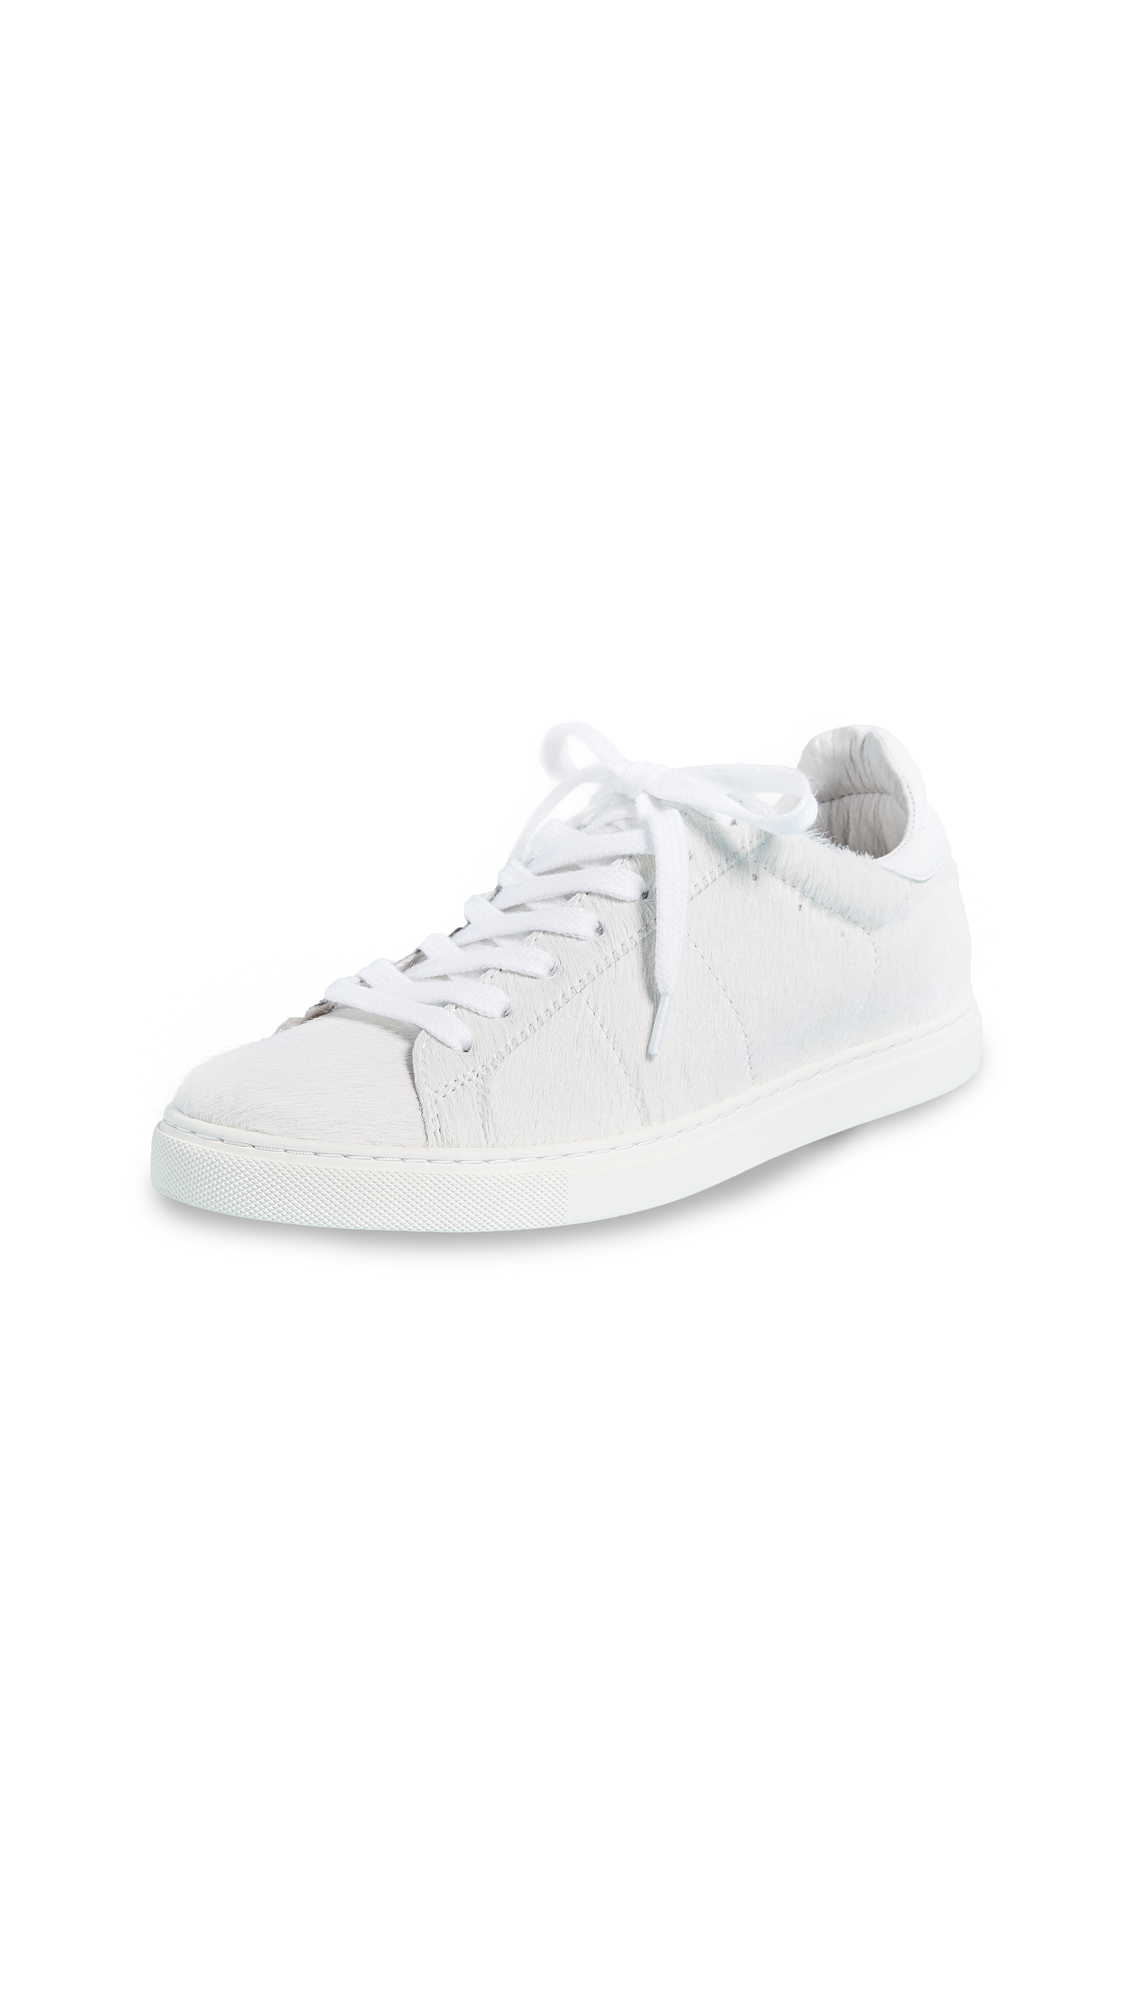 IRO Pony Sneakers - White